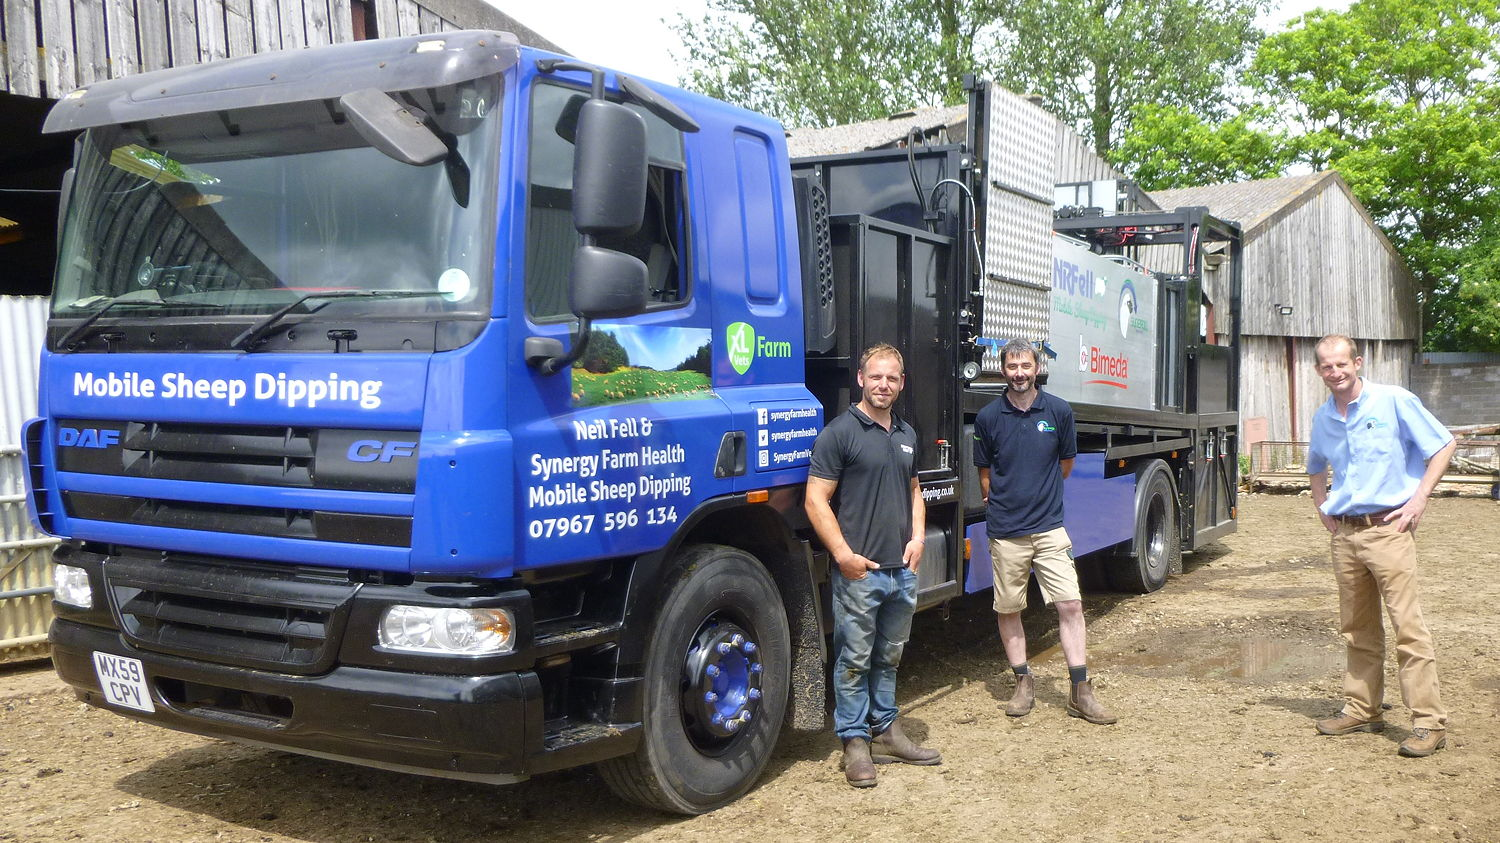 Pictured with the new mobile sheep dipping lorry are (from left): Neil Fell, and Andrew Cooke and Jon Reader of Synergy Farm Health